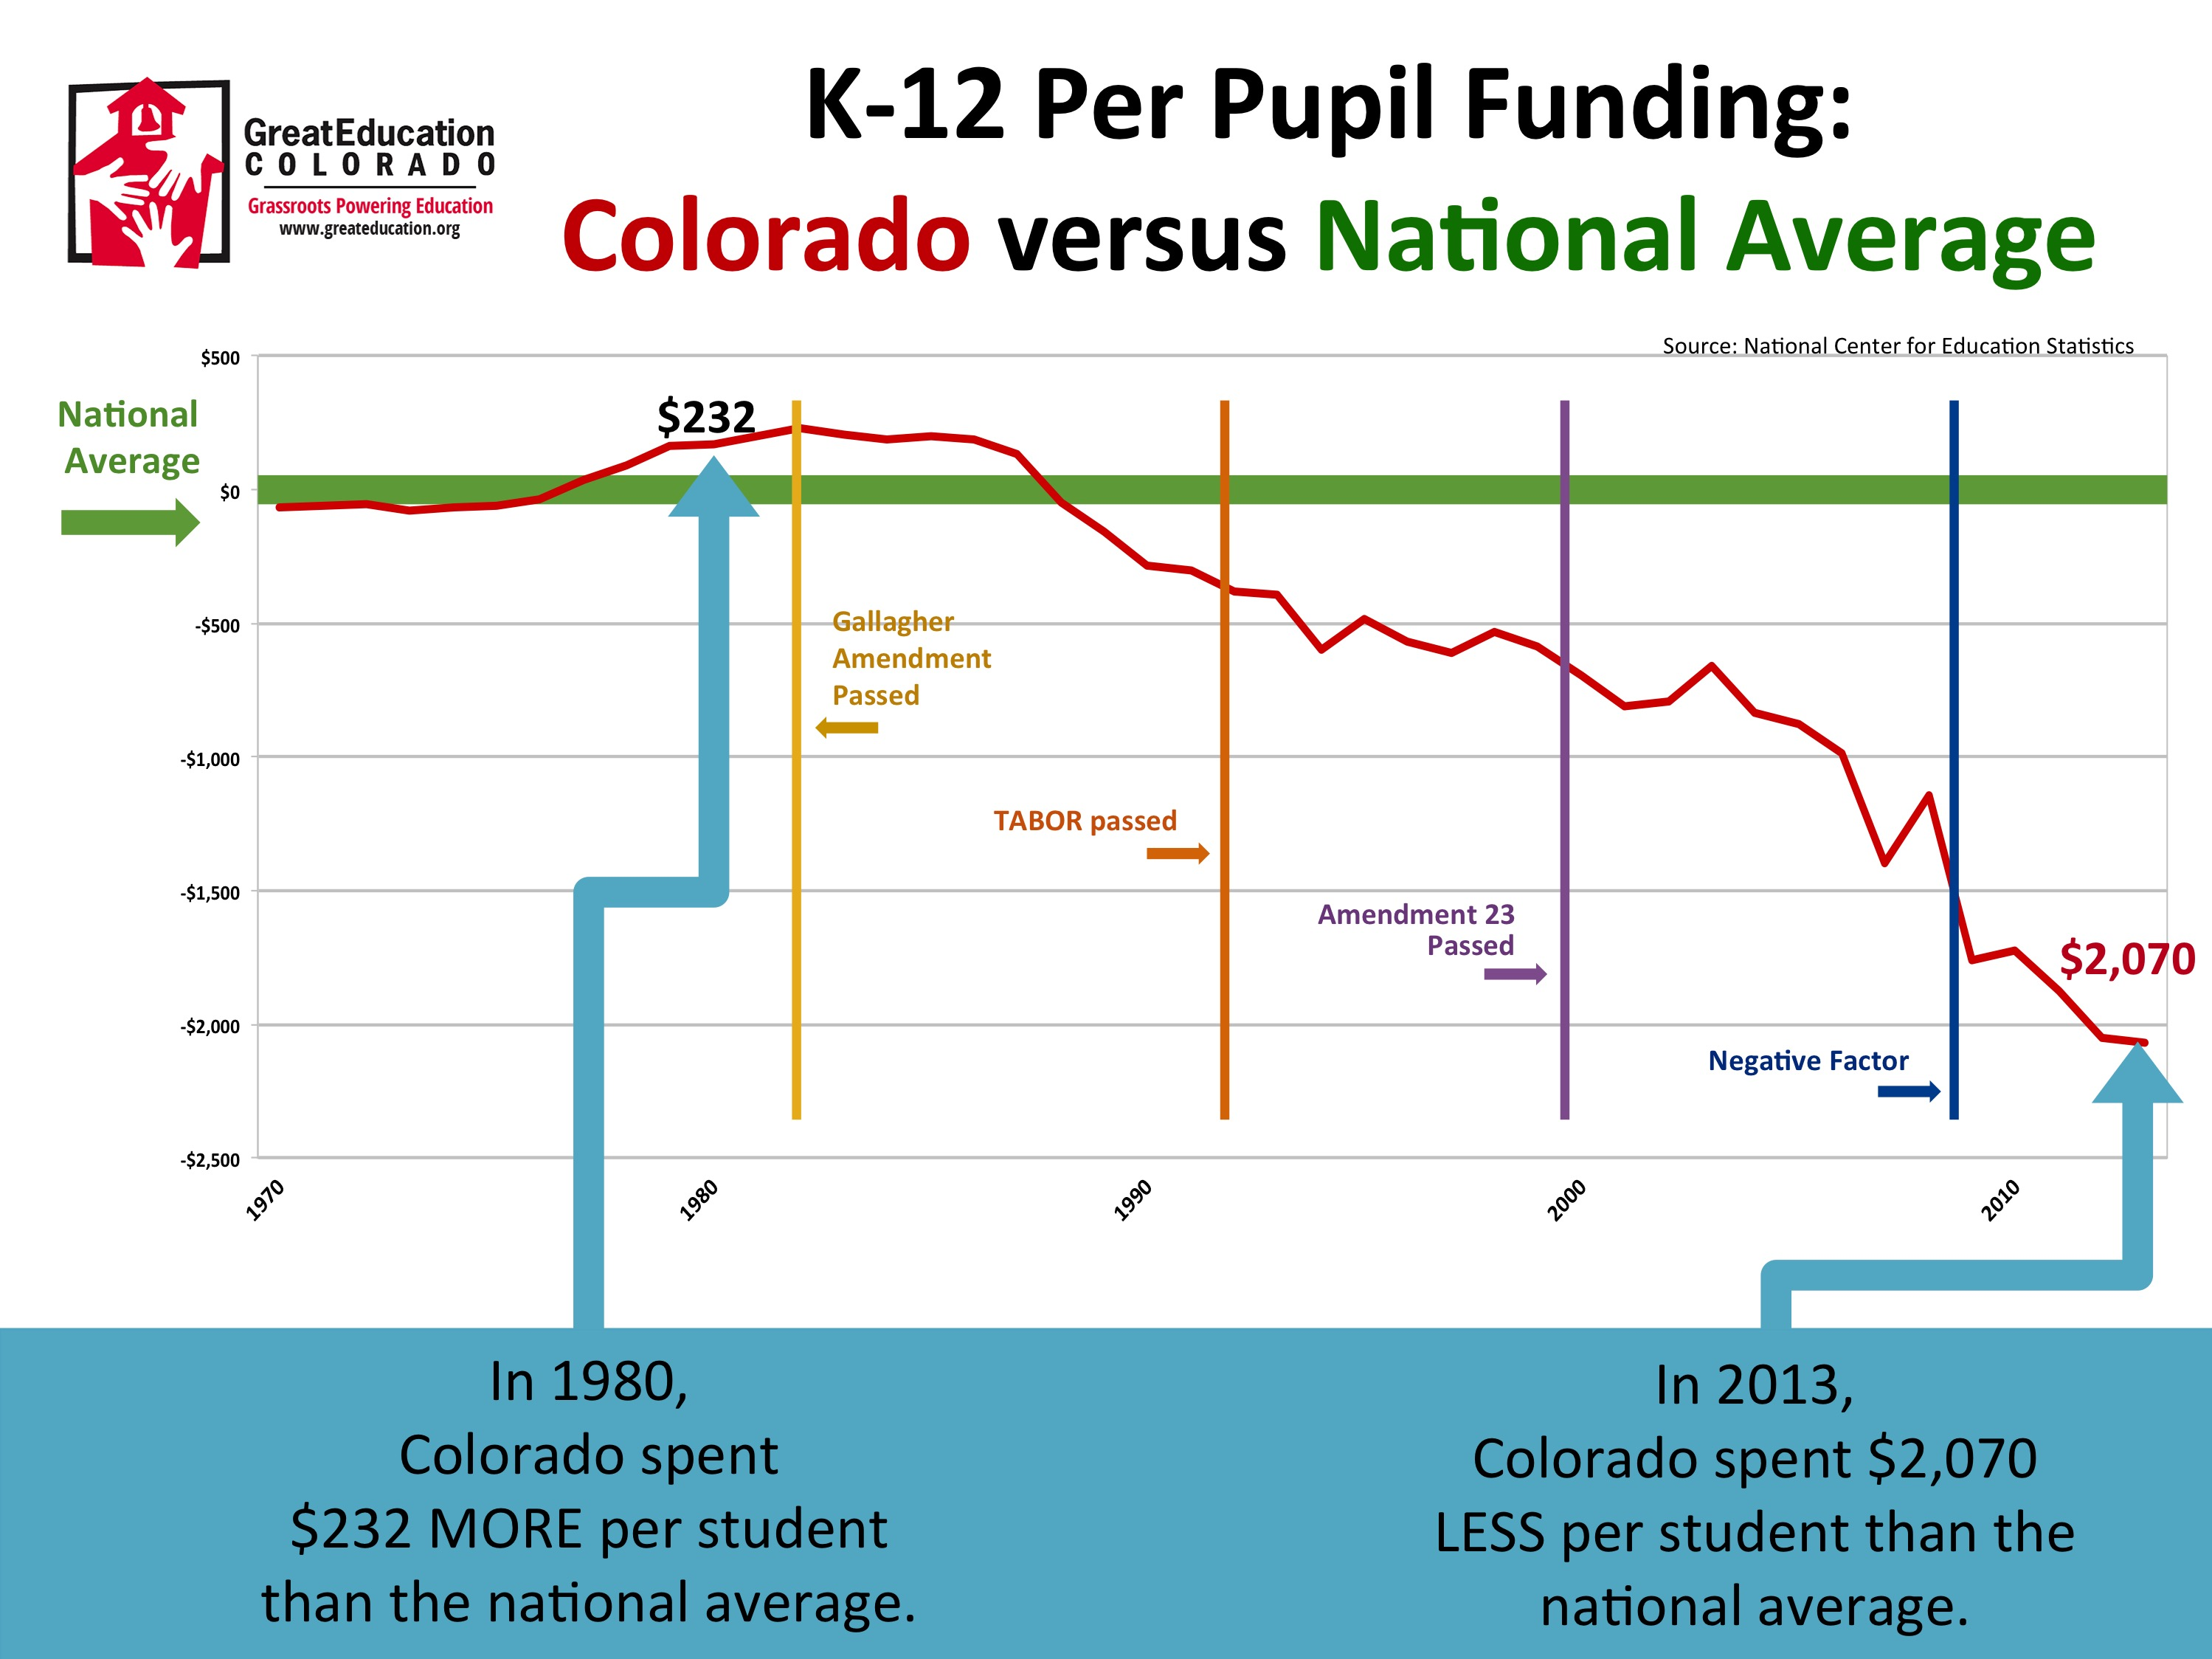 K-12 Per-Pupil Funding: Colorado vs National Average